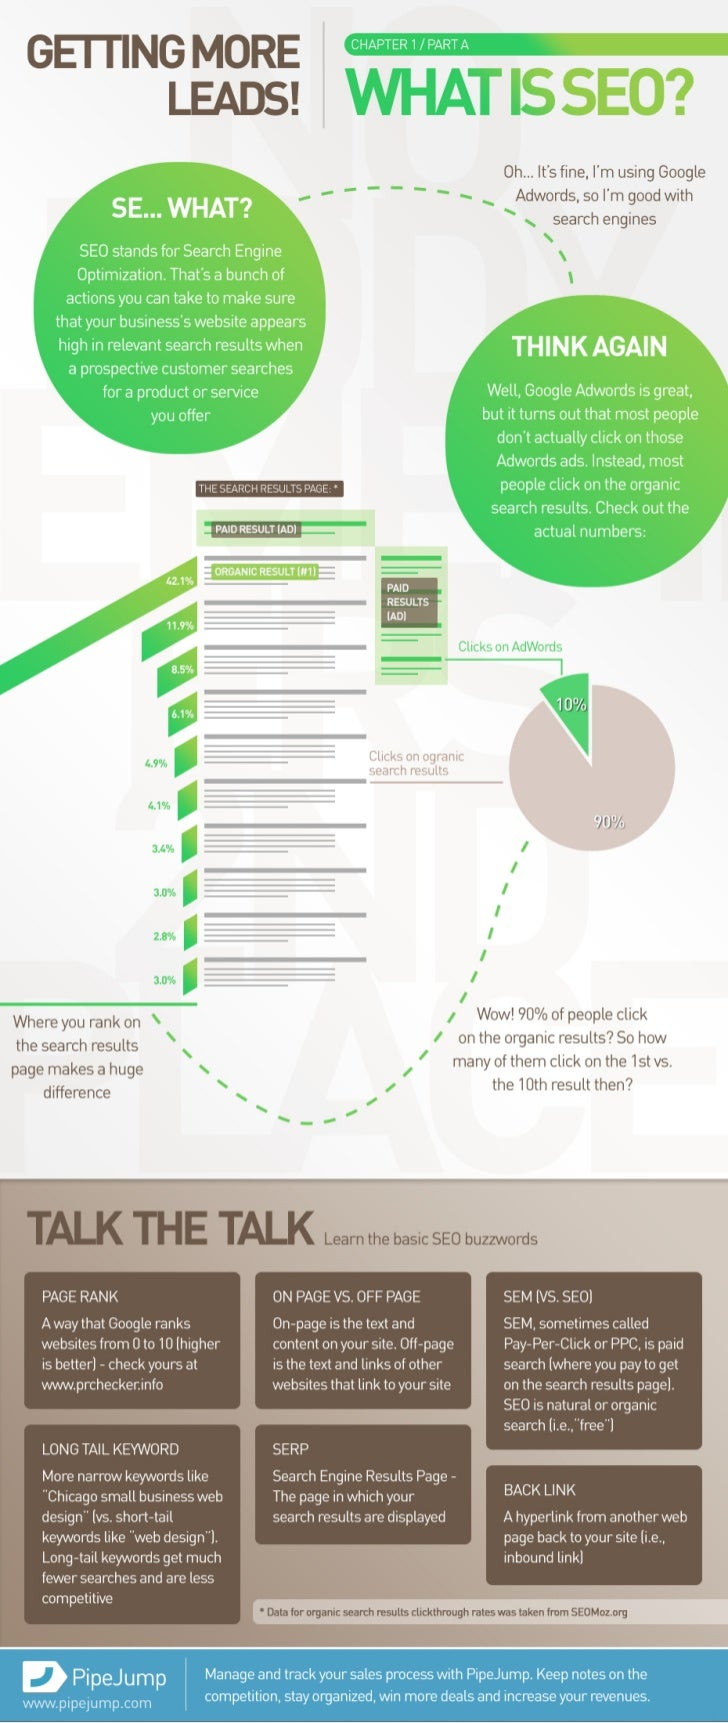 Infographic: What is SEO? (Getting More Leads)